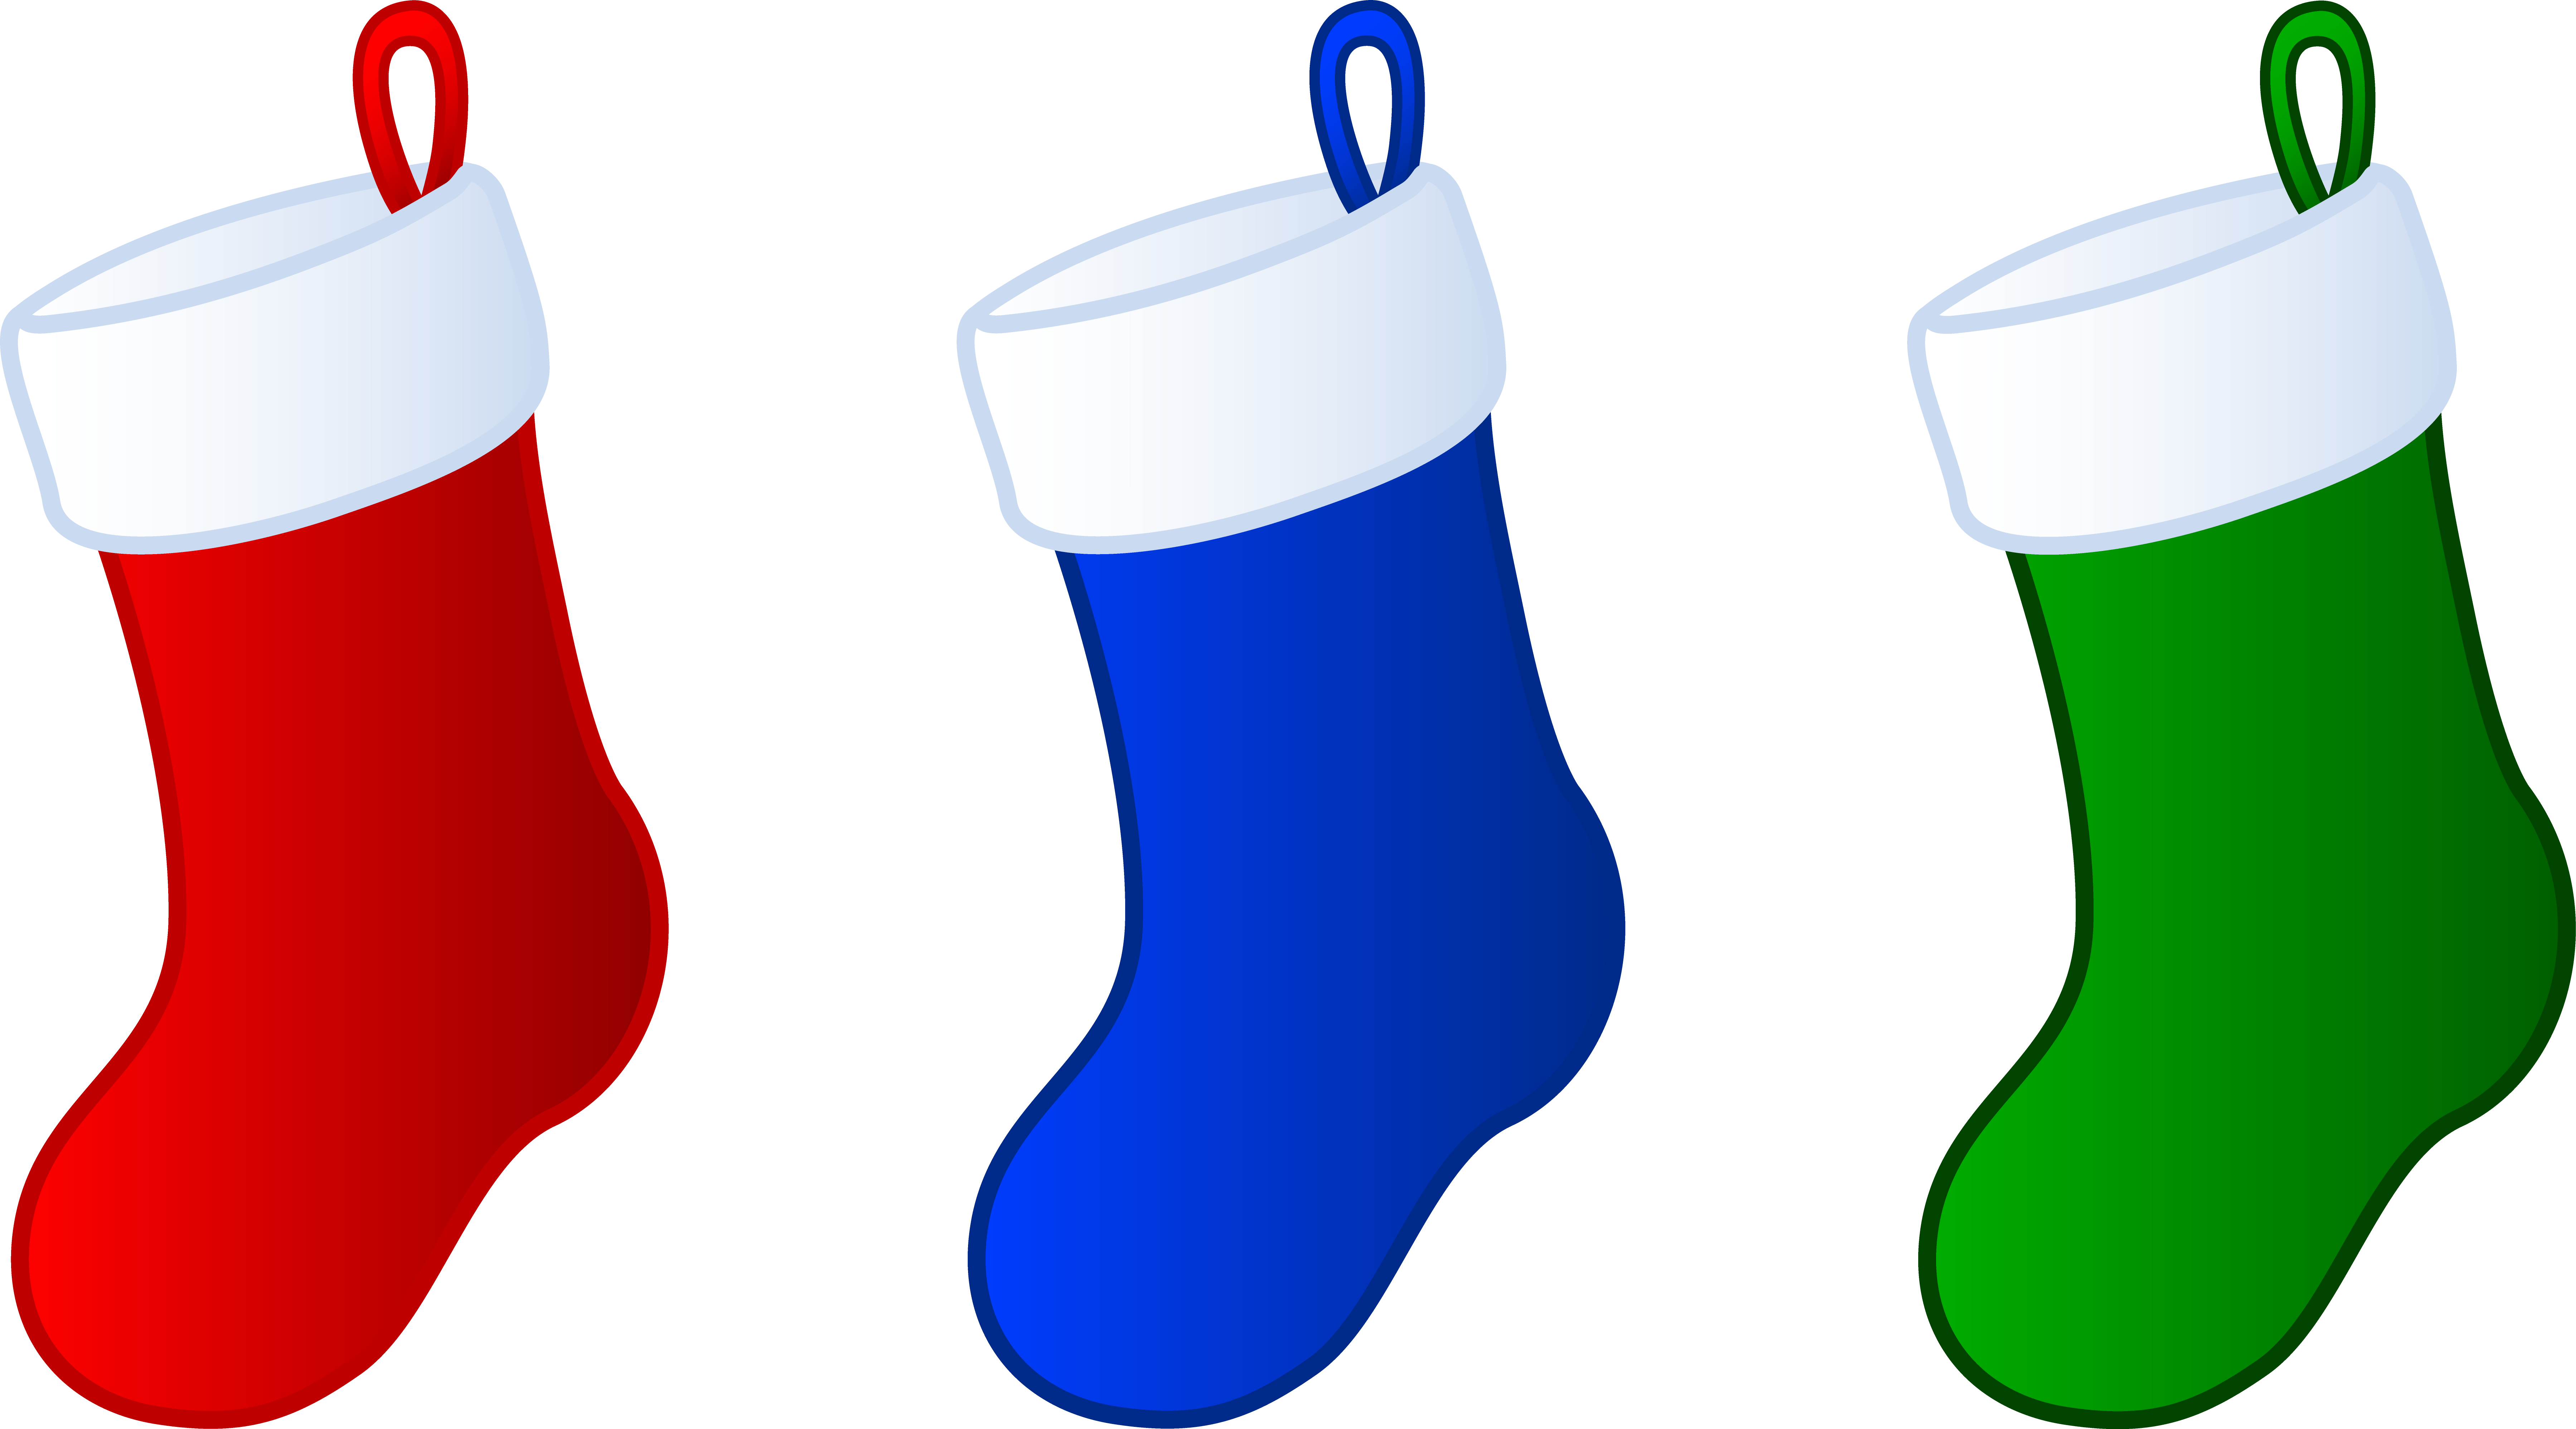 Stocking clipart yule. Three simple christmas stockings